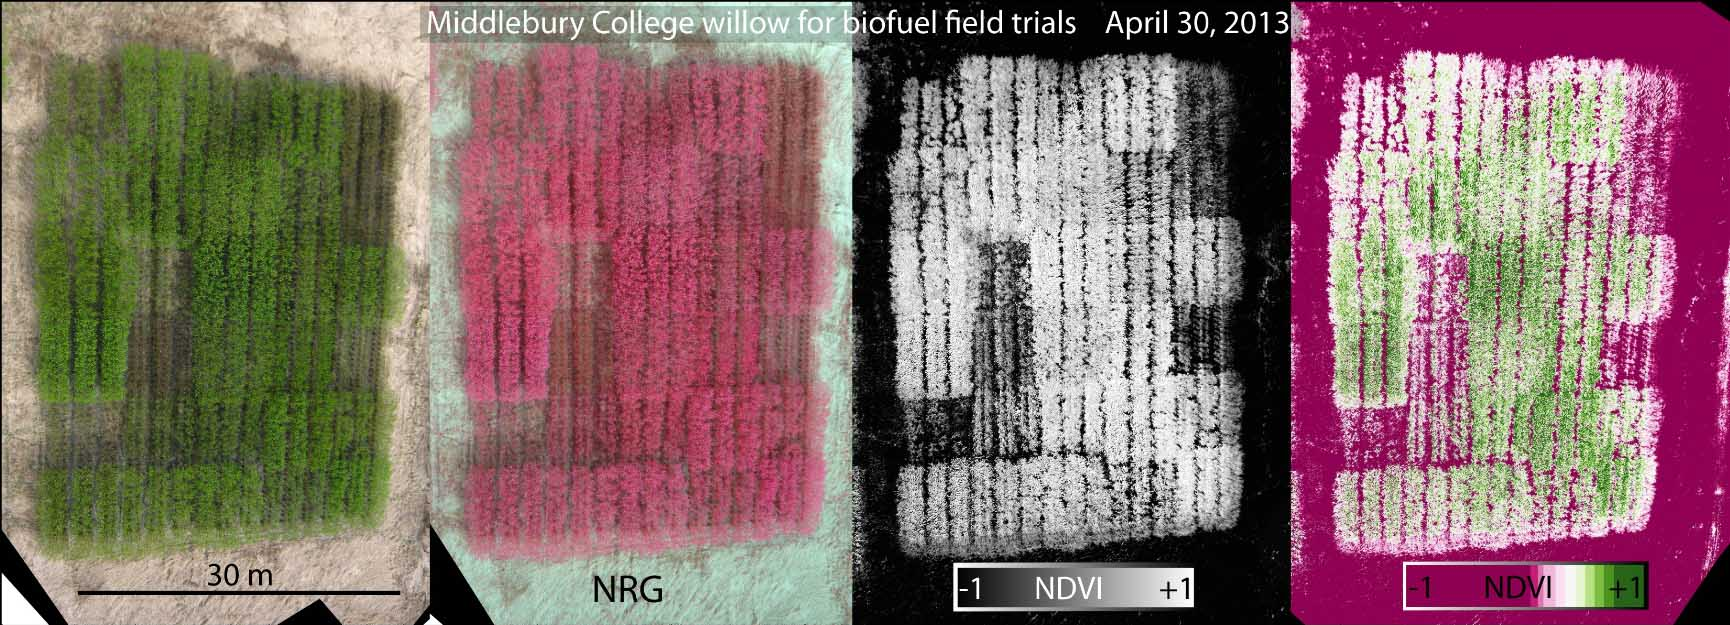 Photo: Normal color photo (left), false color infrared image (NRG), and grayscale and colorized normalized difference vegetation index (NDVI) images. Aerial images were taken by a pair of synchronized cameras lofted by a kite and each is stitched from 12-15 images . NRG and NDVI images were derived from two photos, one taken by a normal camera and one taken by a camera modified to record only infrared light. Healthy plants typically have NDVI values between 0.1 and 0.9. Note that brown vegetation has very low NDVI values because it is not photosynthetic.